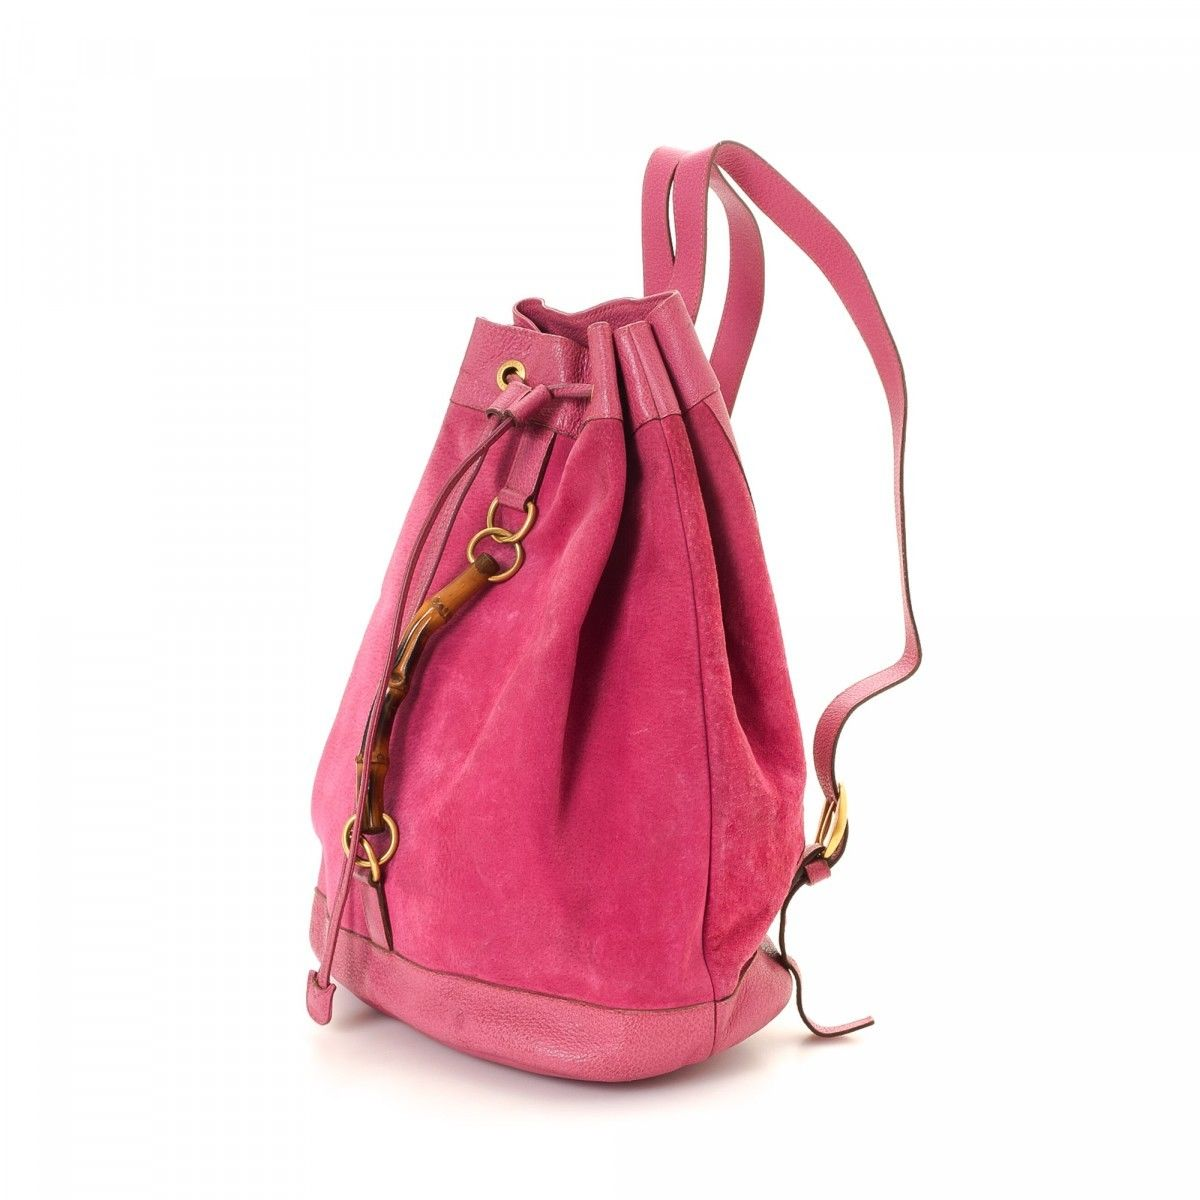 5a75c65c0 Gucci Bamboo Backpack Suede - LXRandCo - Pre-Owned Luxury Vintage